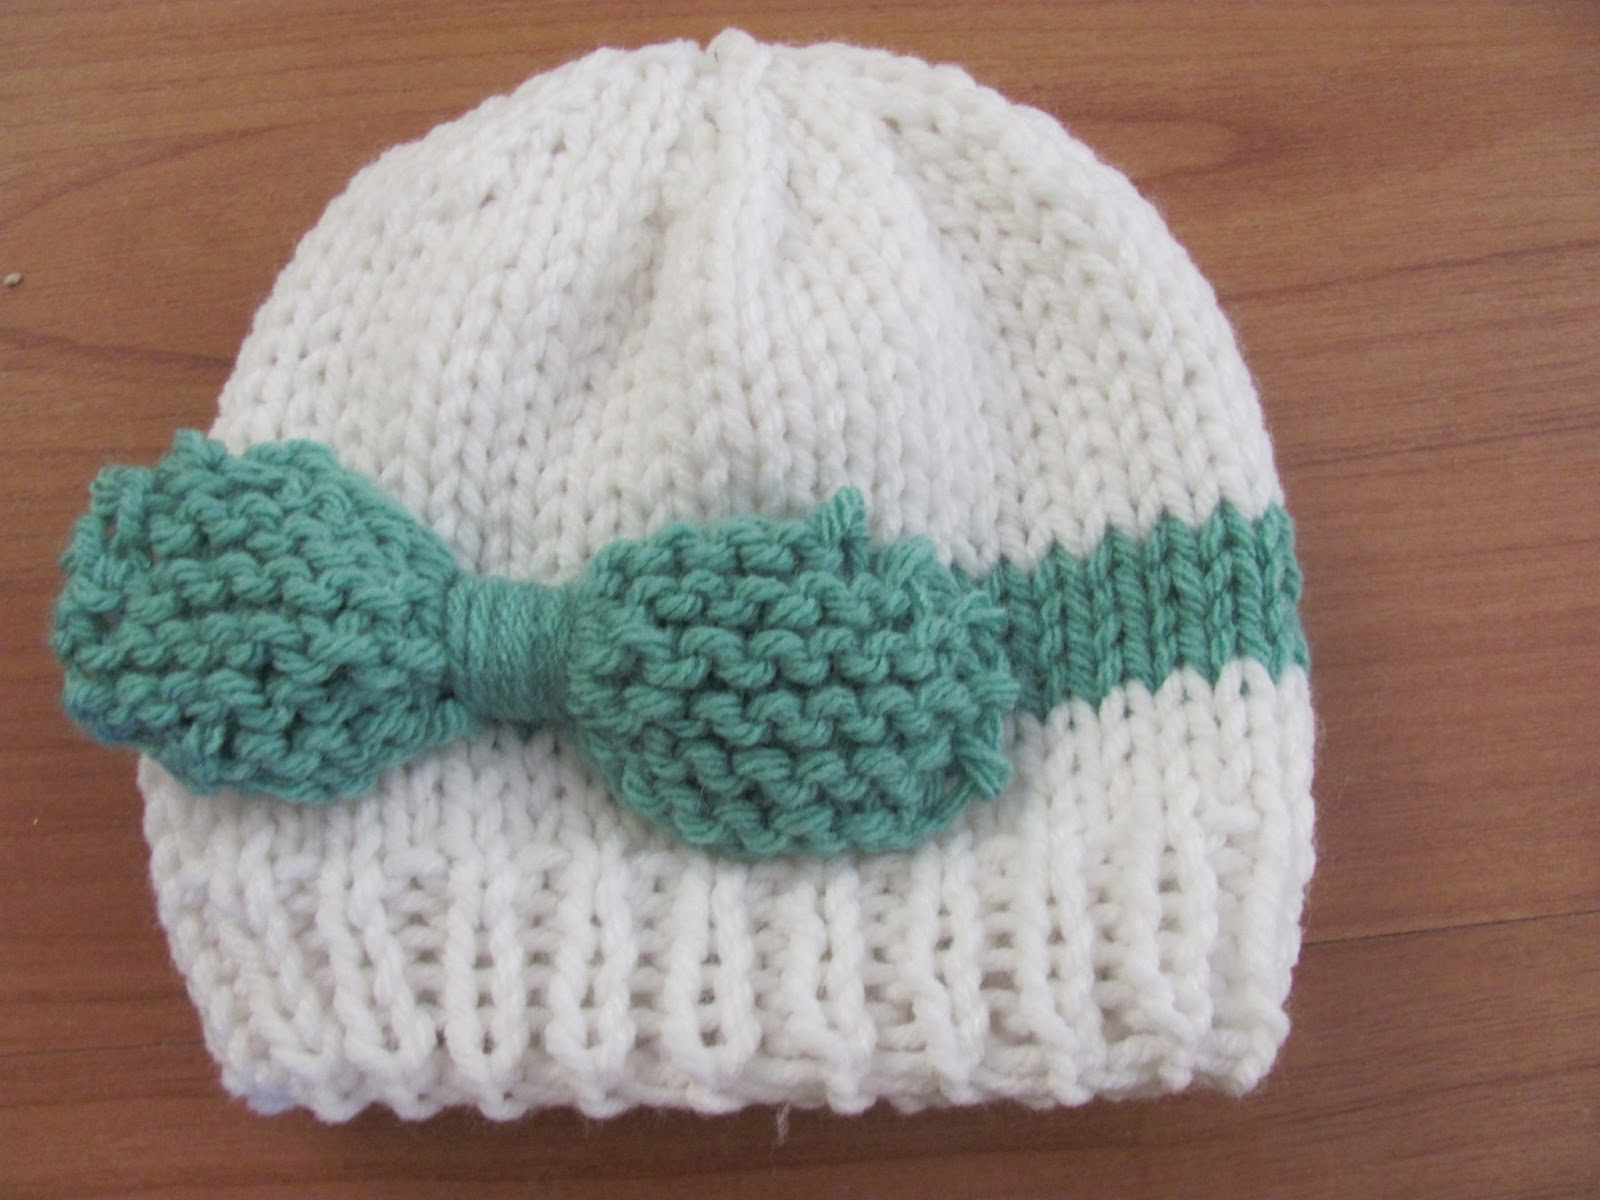 Easy Knitting Patterns For Toddler Hats : Twenty Something Granny: Knitted Baby Bow Hat